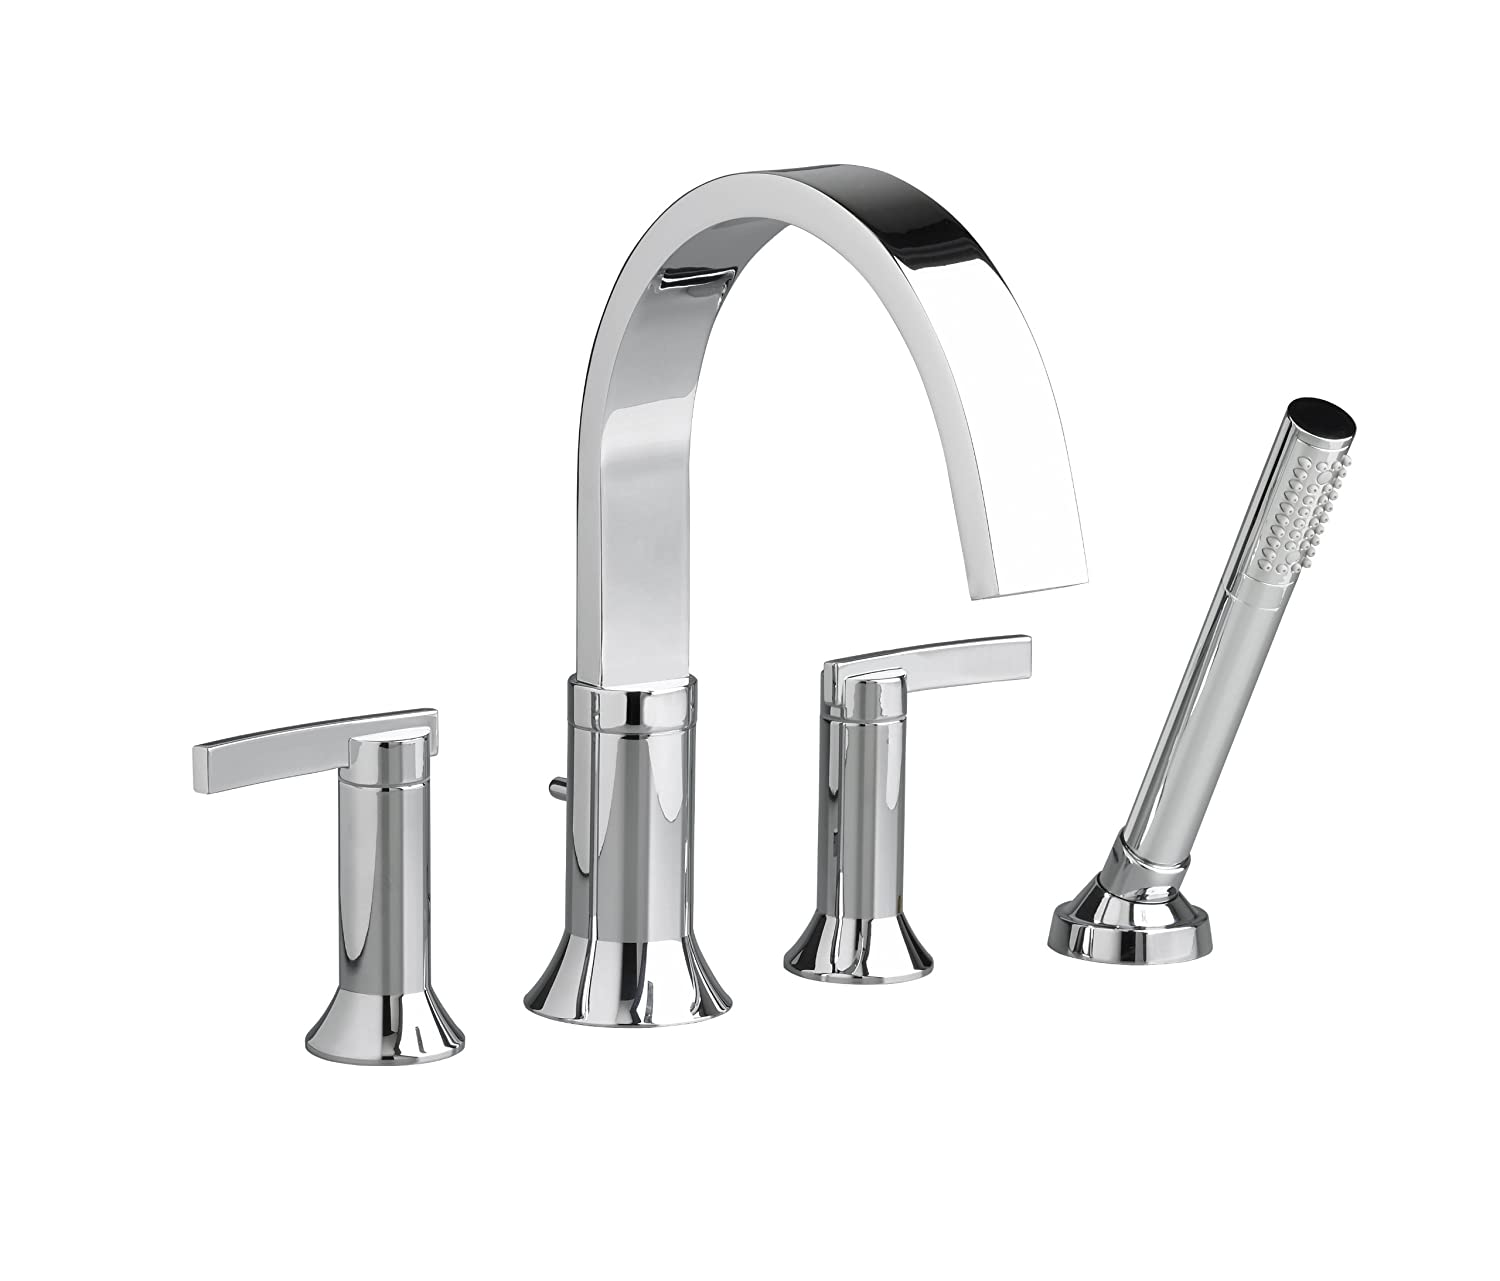 American Standard 7430.901.002 Berwick 2 Lever Handle Deck Mount Tub ...